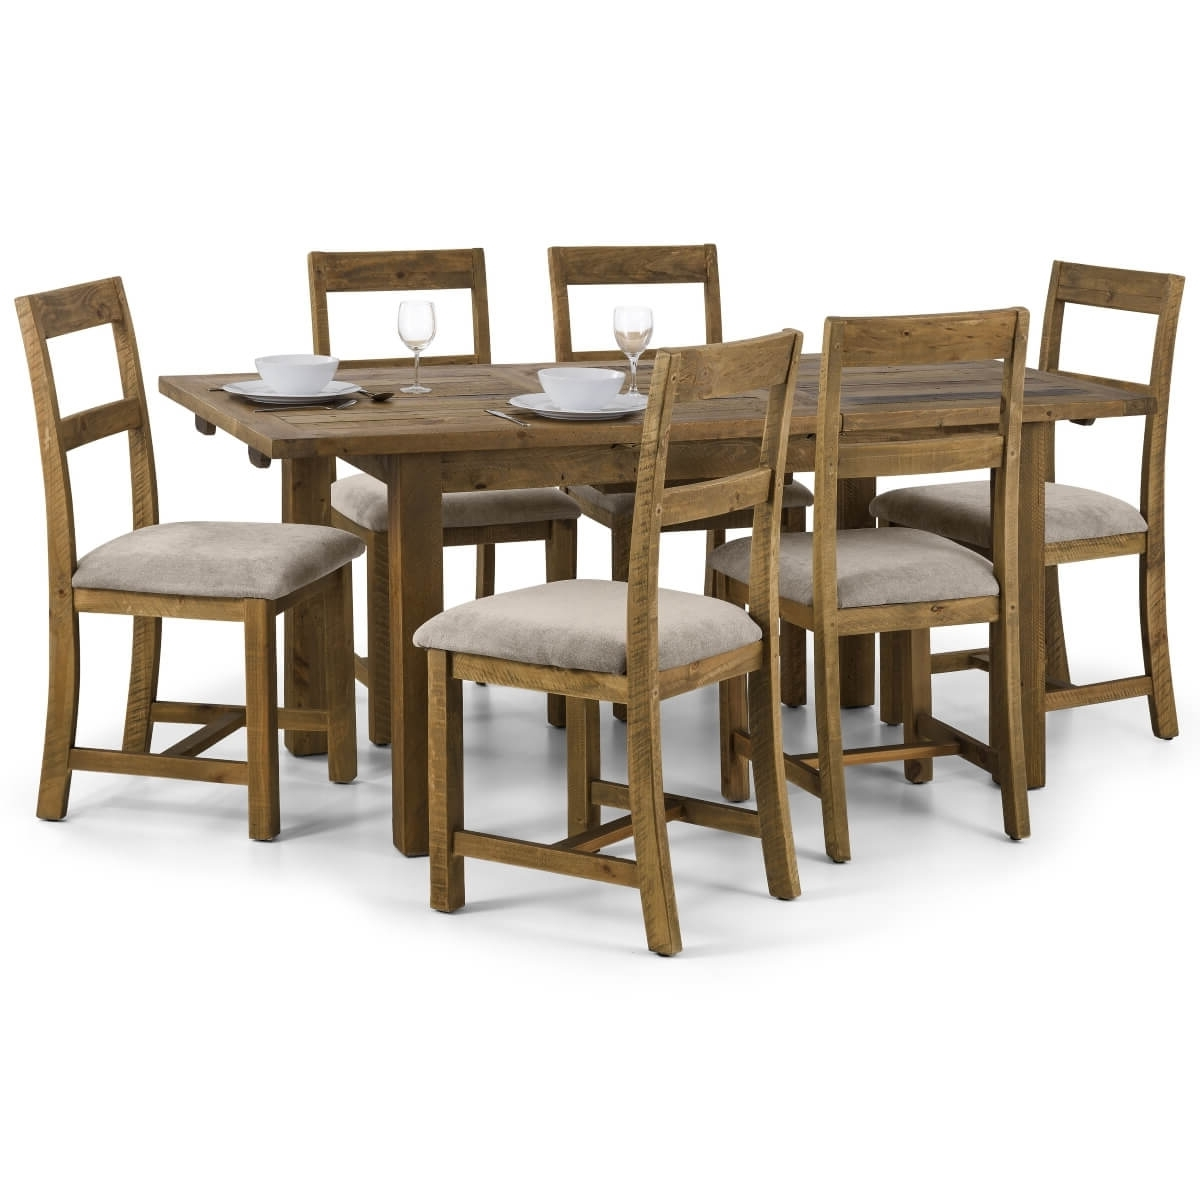 Aspen Dining Tables Regarding Most Popular Dining Set – Aspen Extending Dining Table, 4 Chairs In Pine Asp016 (Gallery 9 of 25)